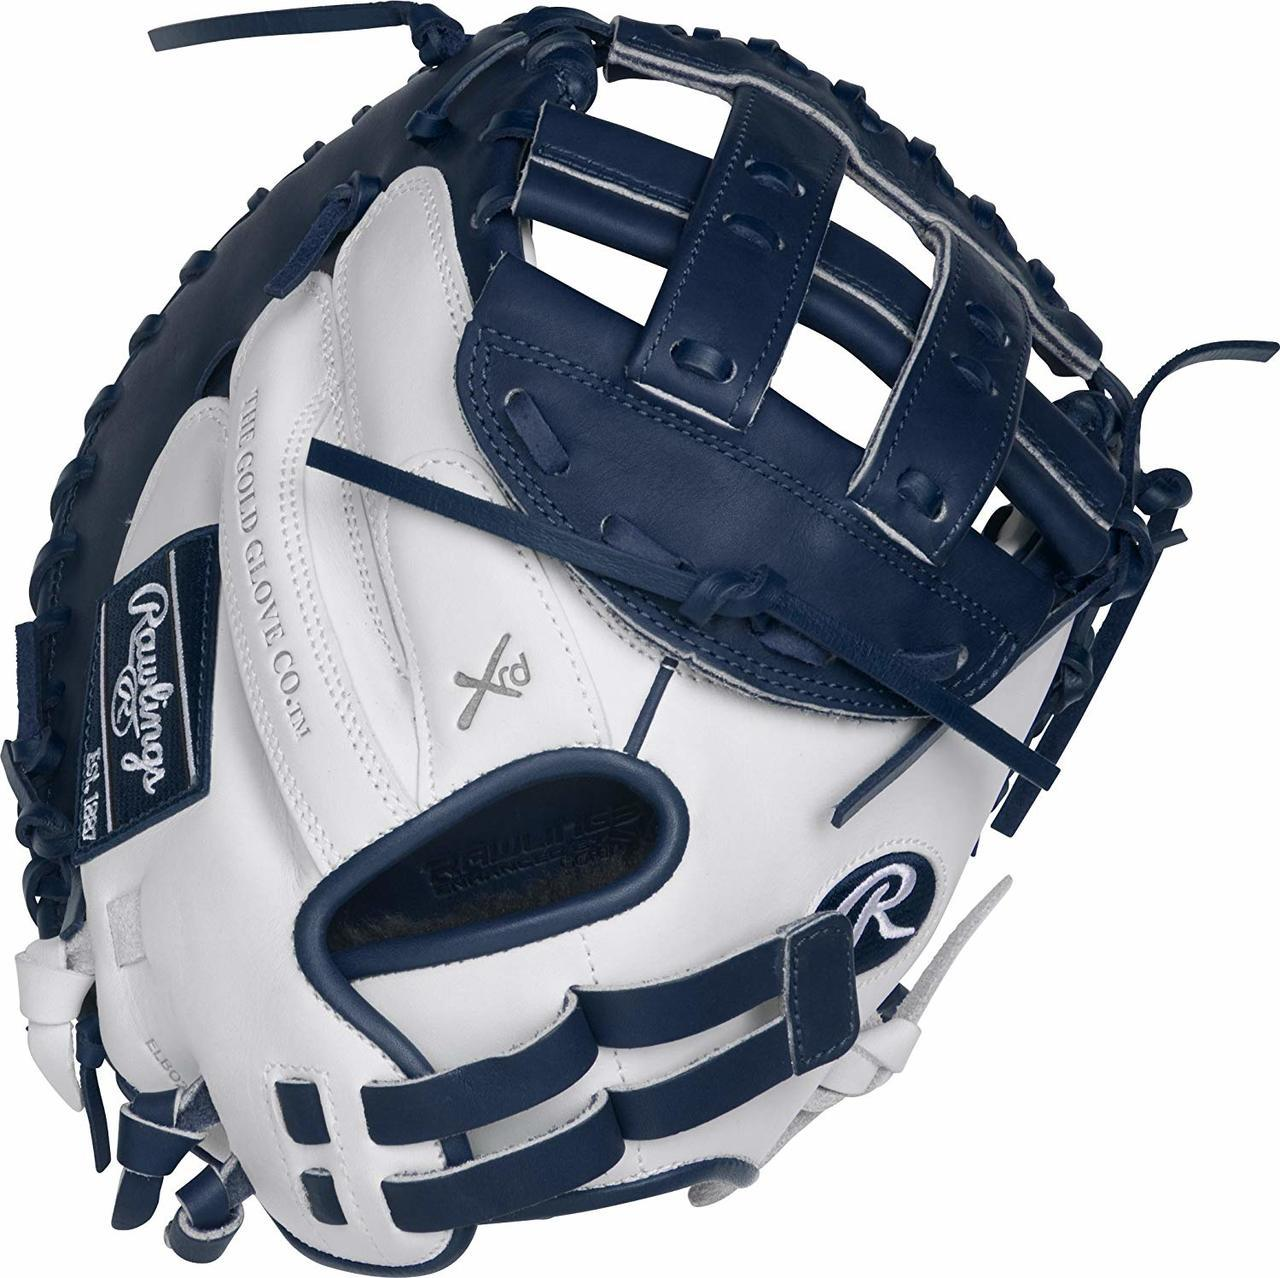 rawlings liberty softball glove